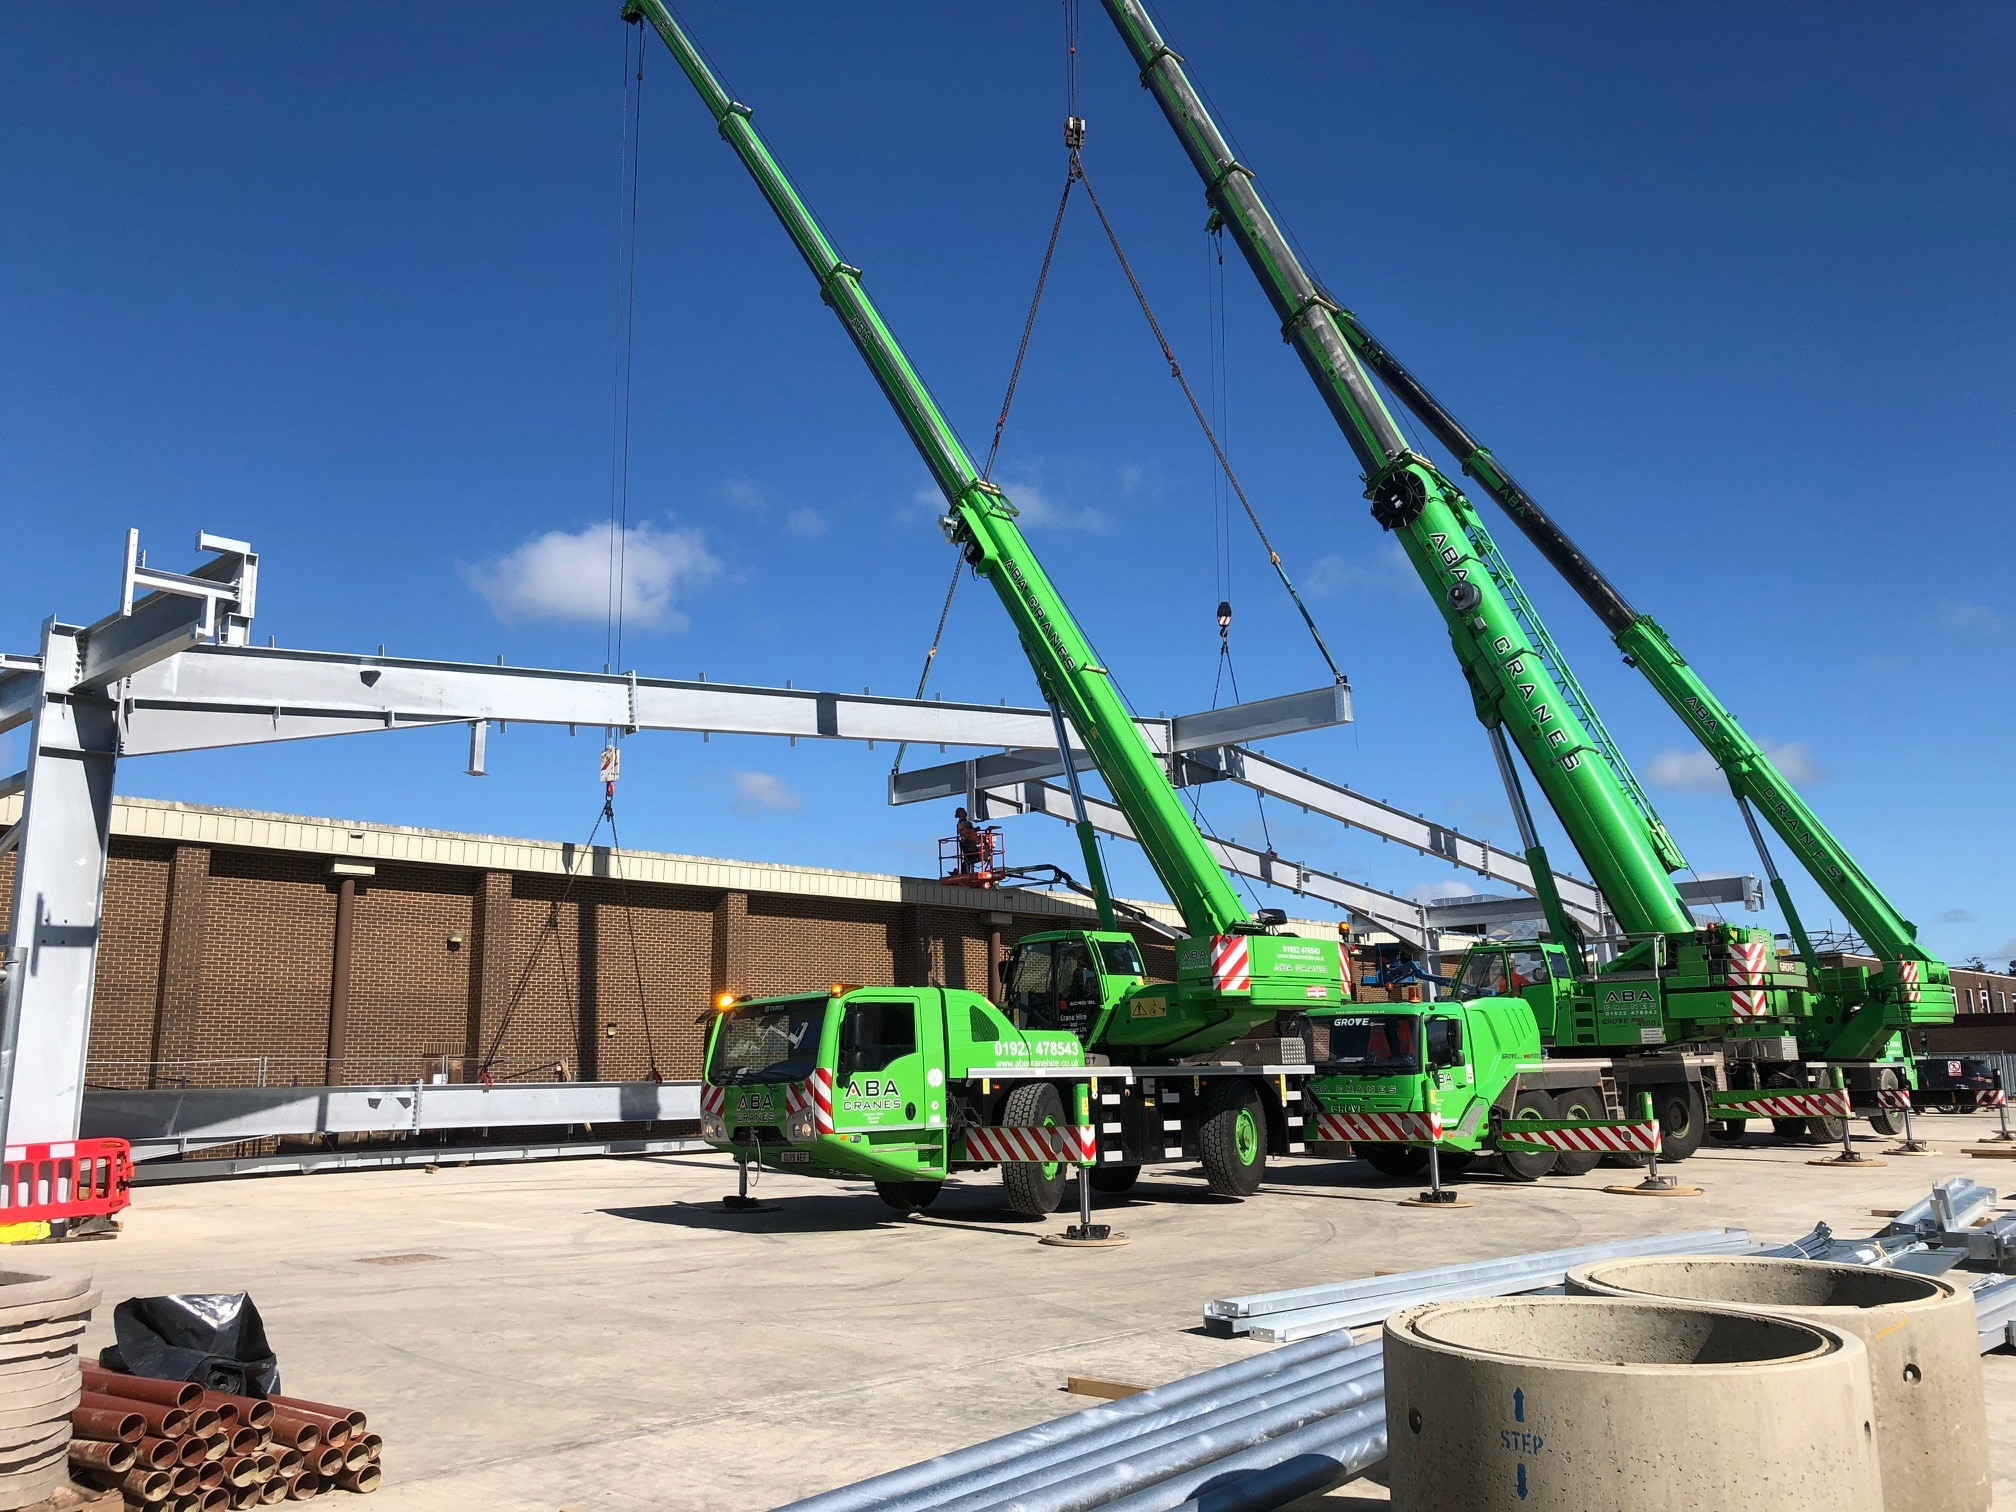 Lift off for New Building Extension at Barry Callebaut Chocolate Factory!